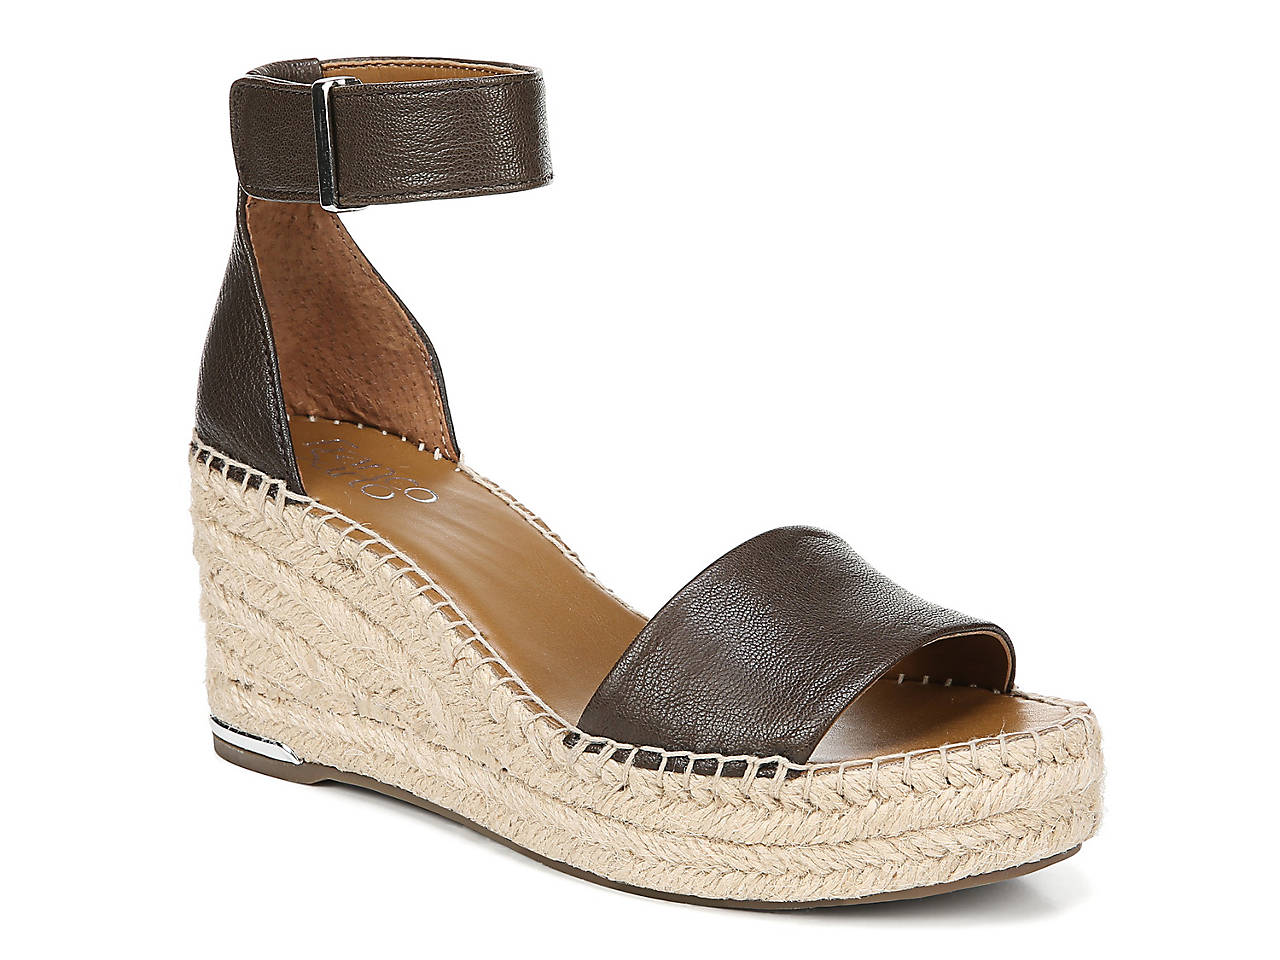 5d8b979bf72a Franco Sarto Clemens Espadrille Wedge Sandal Women s Shoes